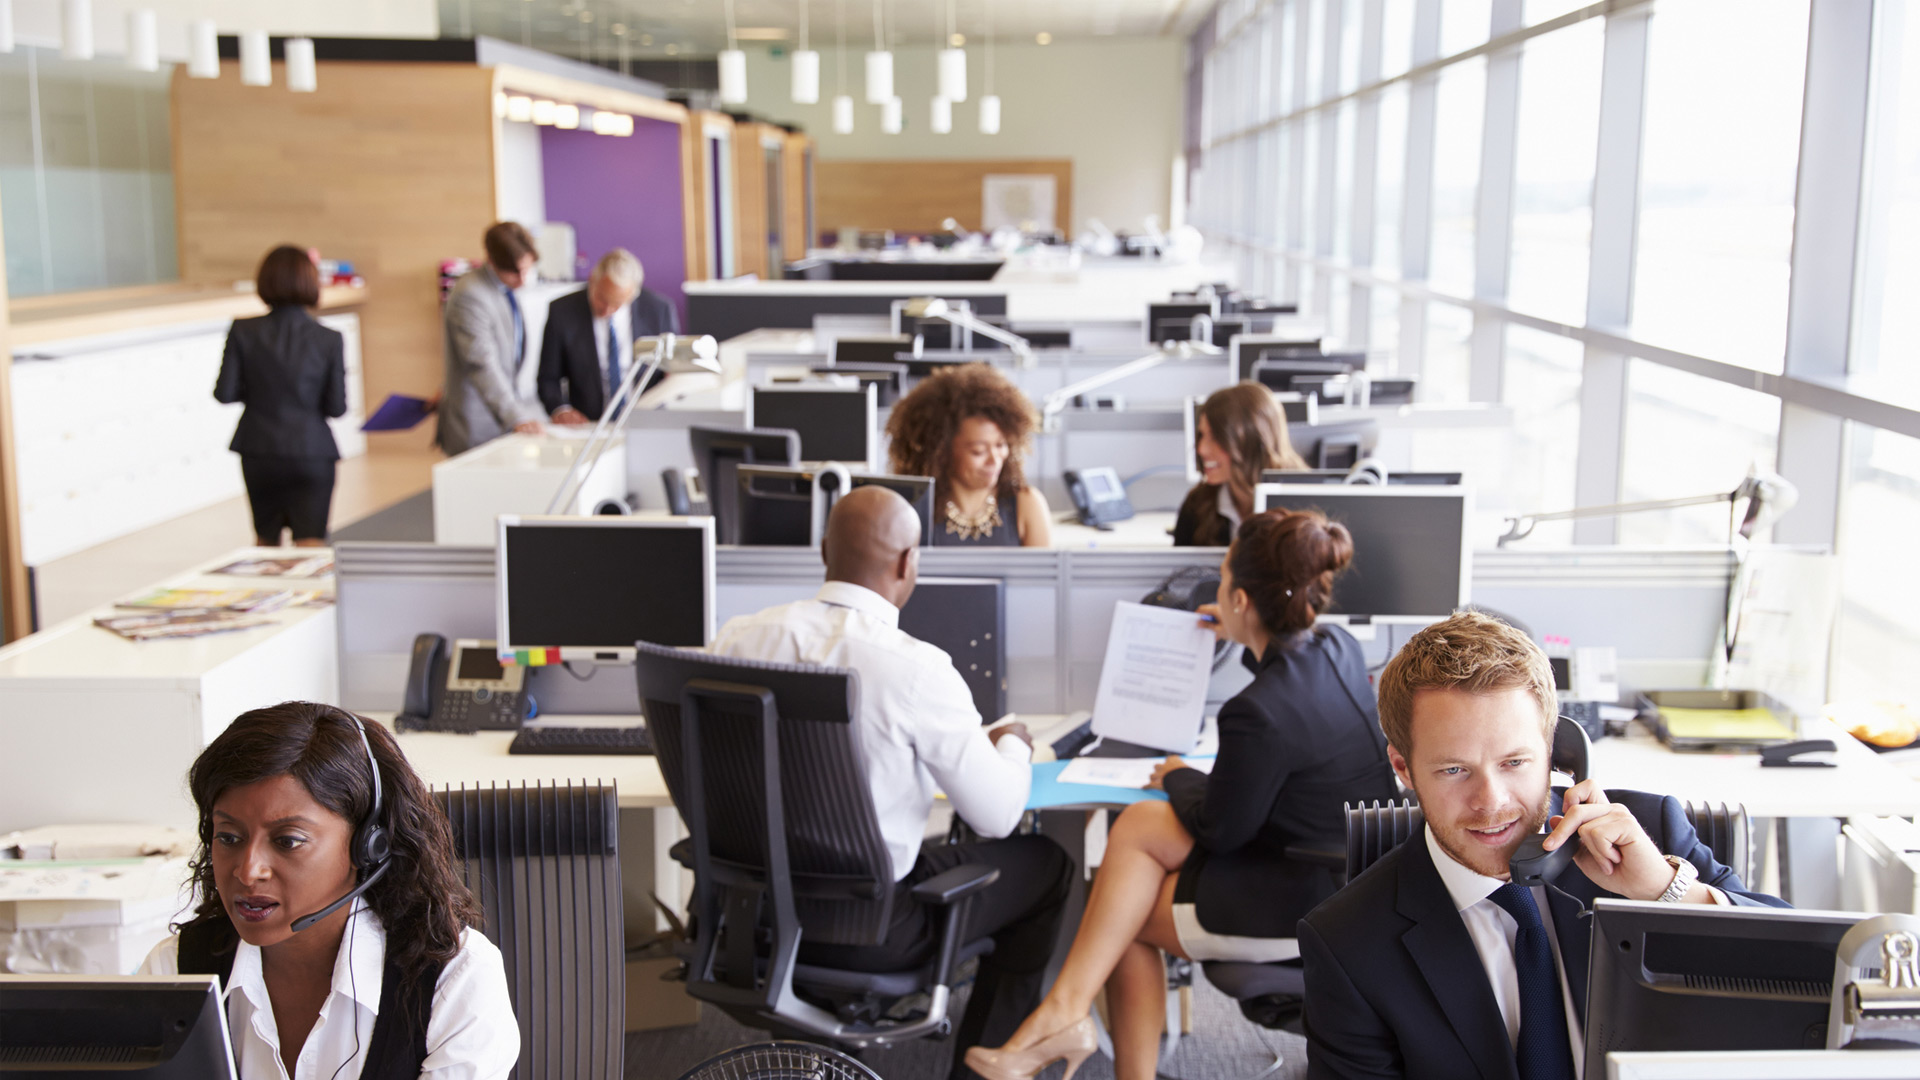 image of office workers on phone for report on EIS contract